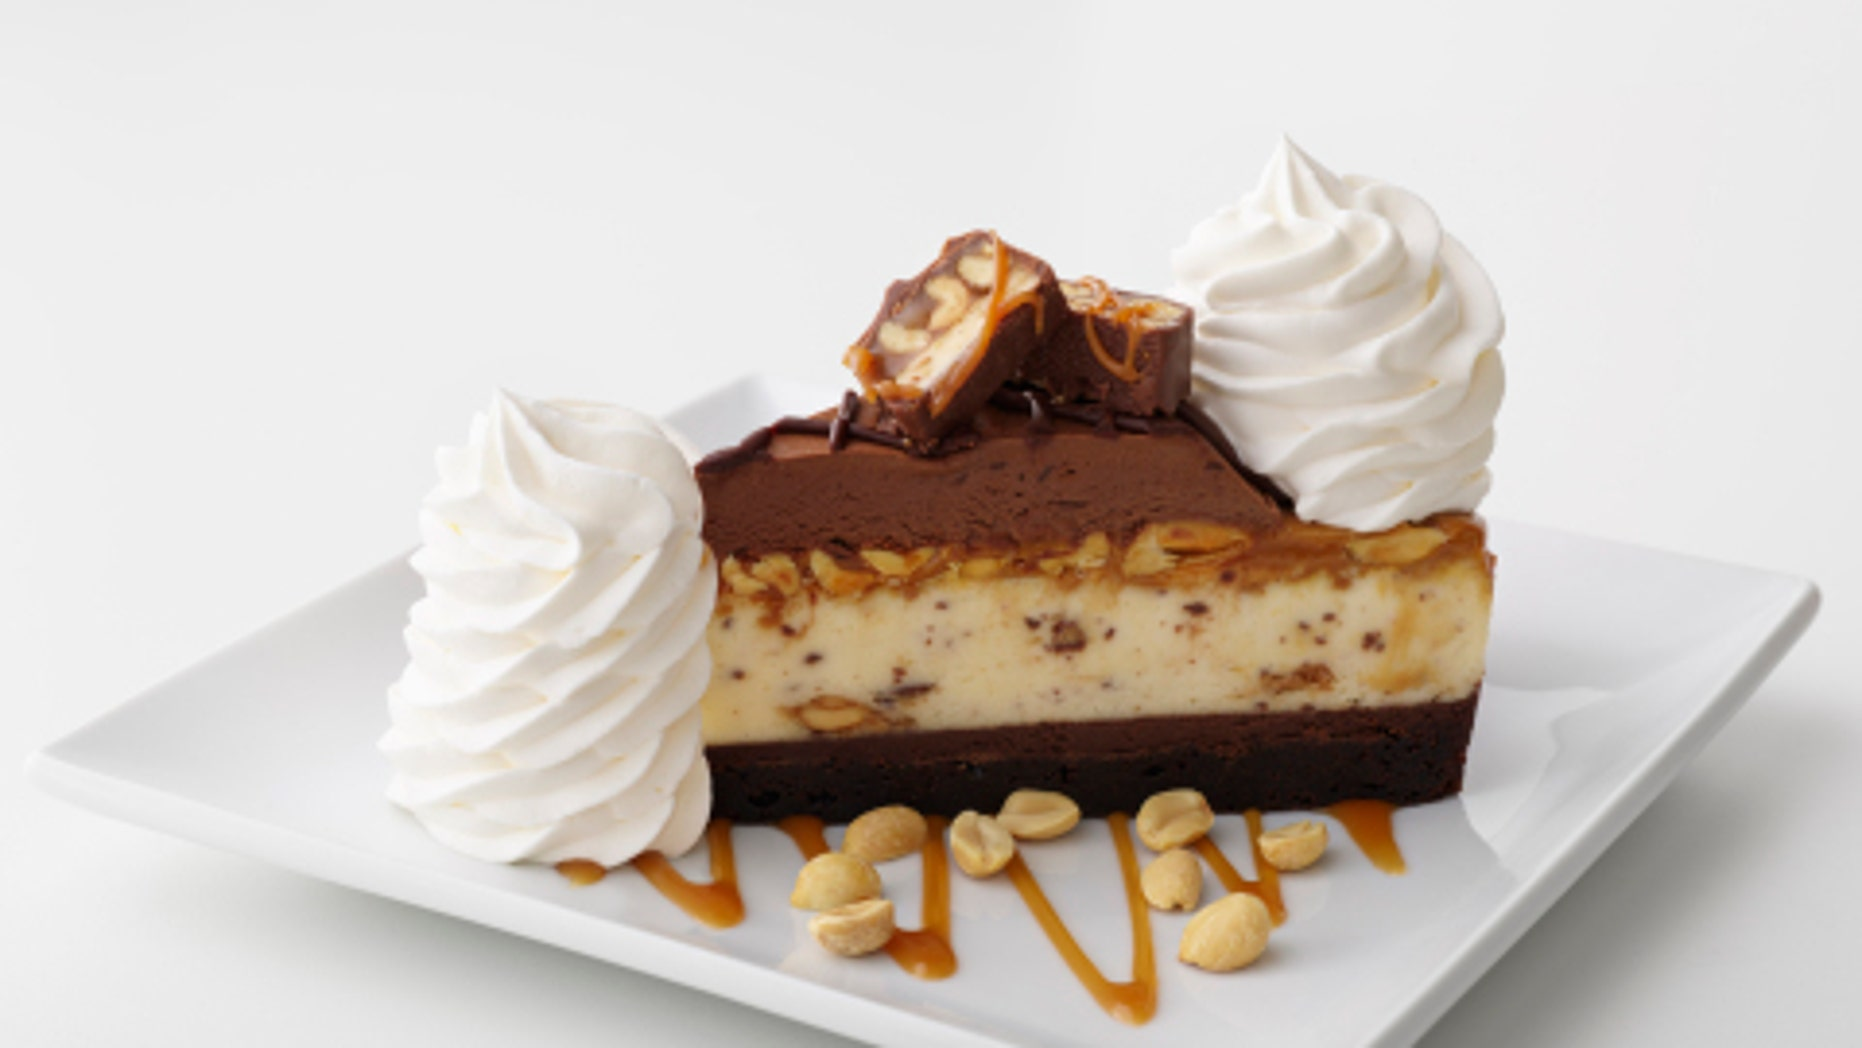 The restaurant revealed its newest flavor launching on Thursday: Chocolate Caramelicious with Snickers.